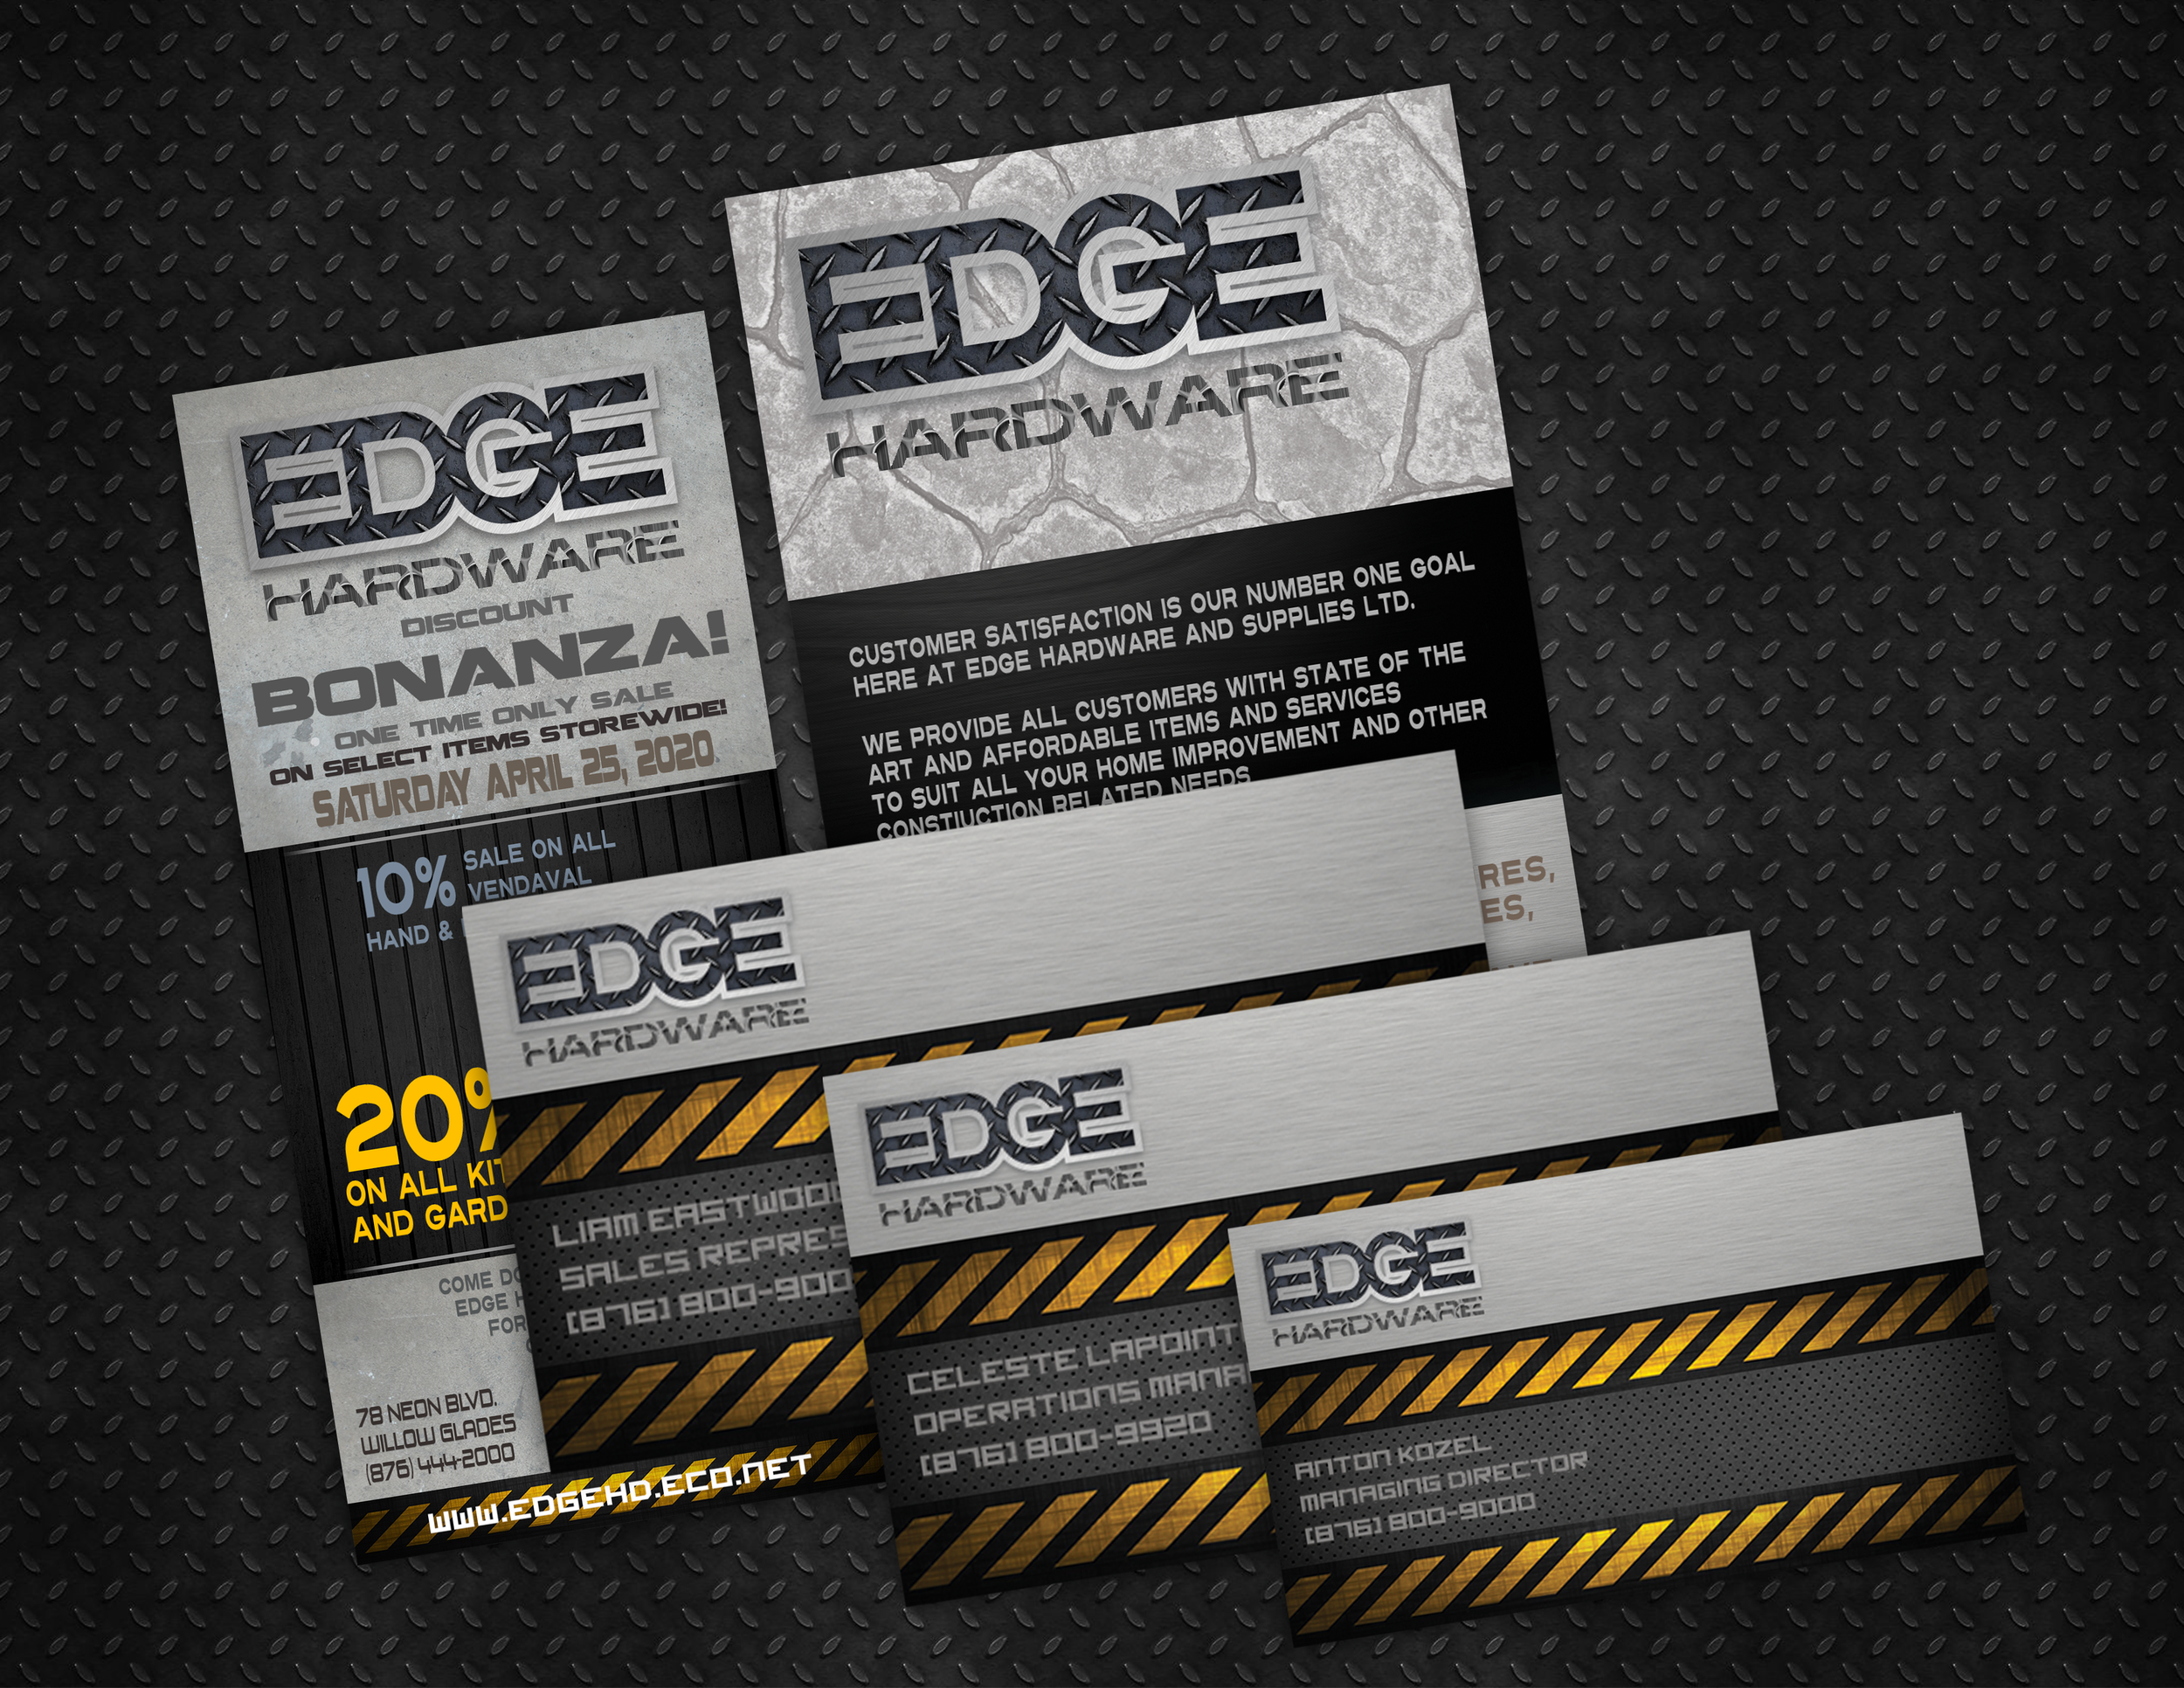 EDGE Hardware and Supplies Ltd. (MARKETING DEVICES).png